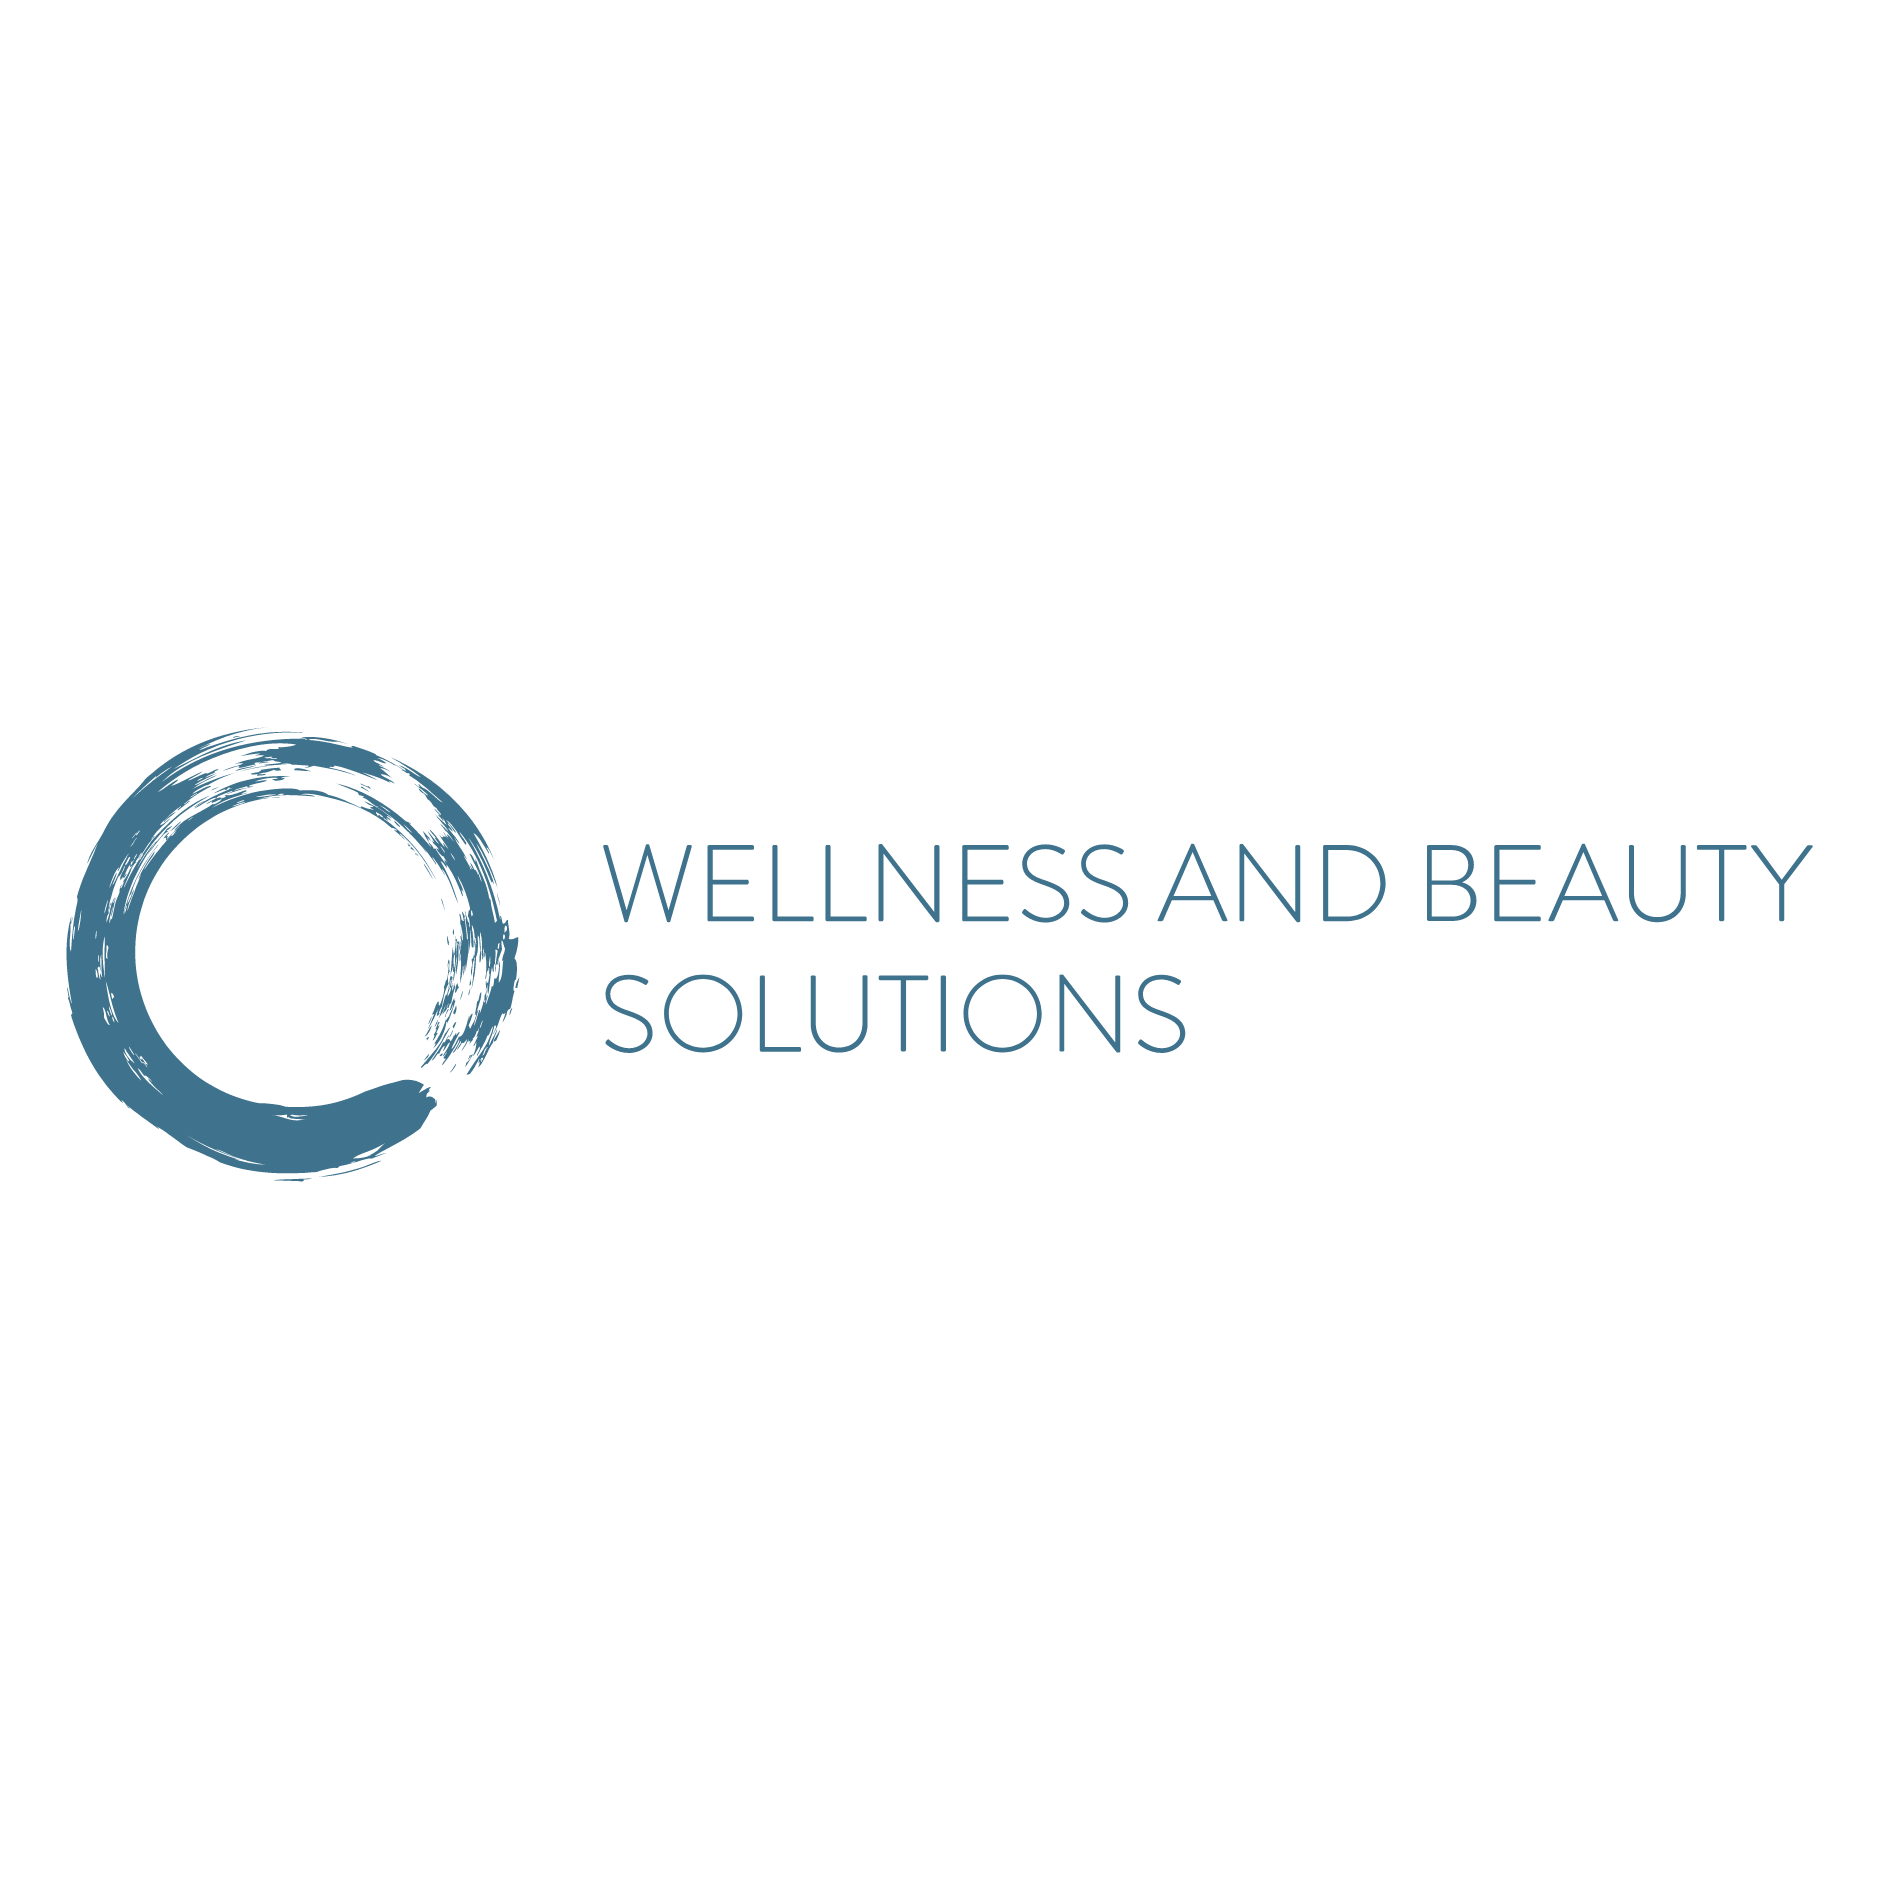 WELLNESS AND BEAUTY SOLUTIONS LIMITED